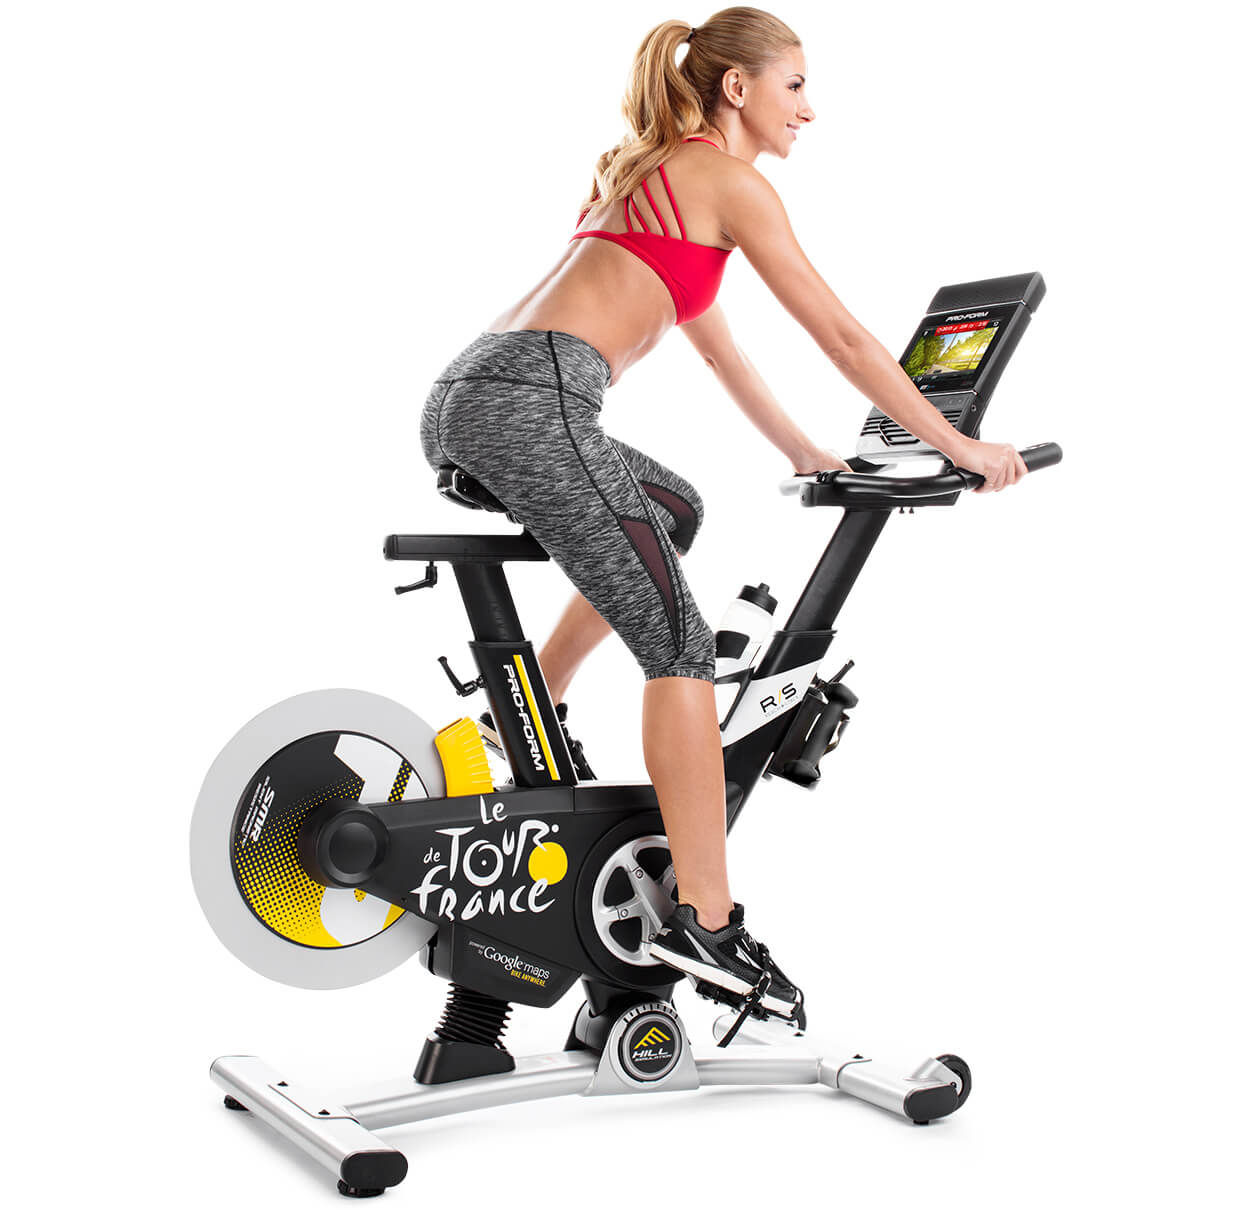 Proform Exercise Bikes Studio Bike Pro  gallery image 11